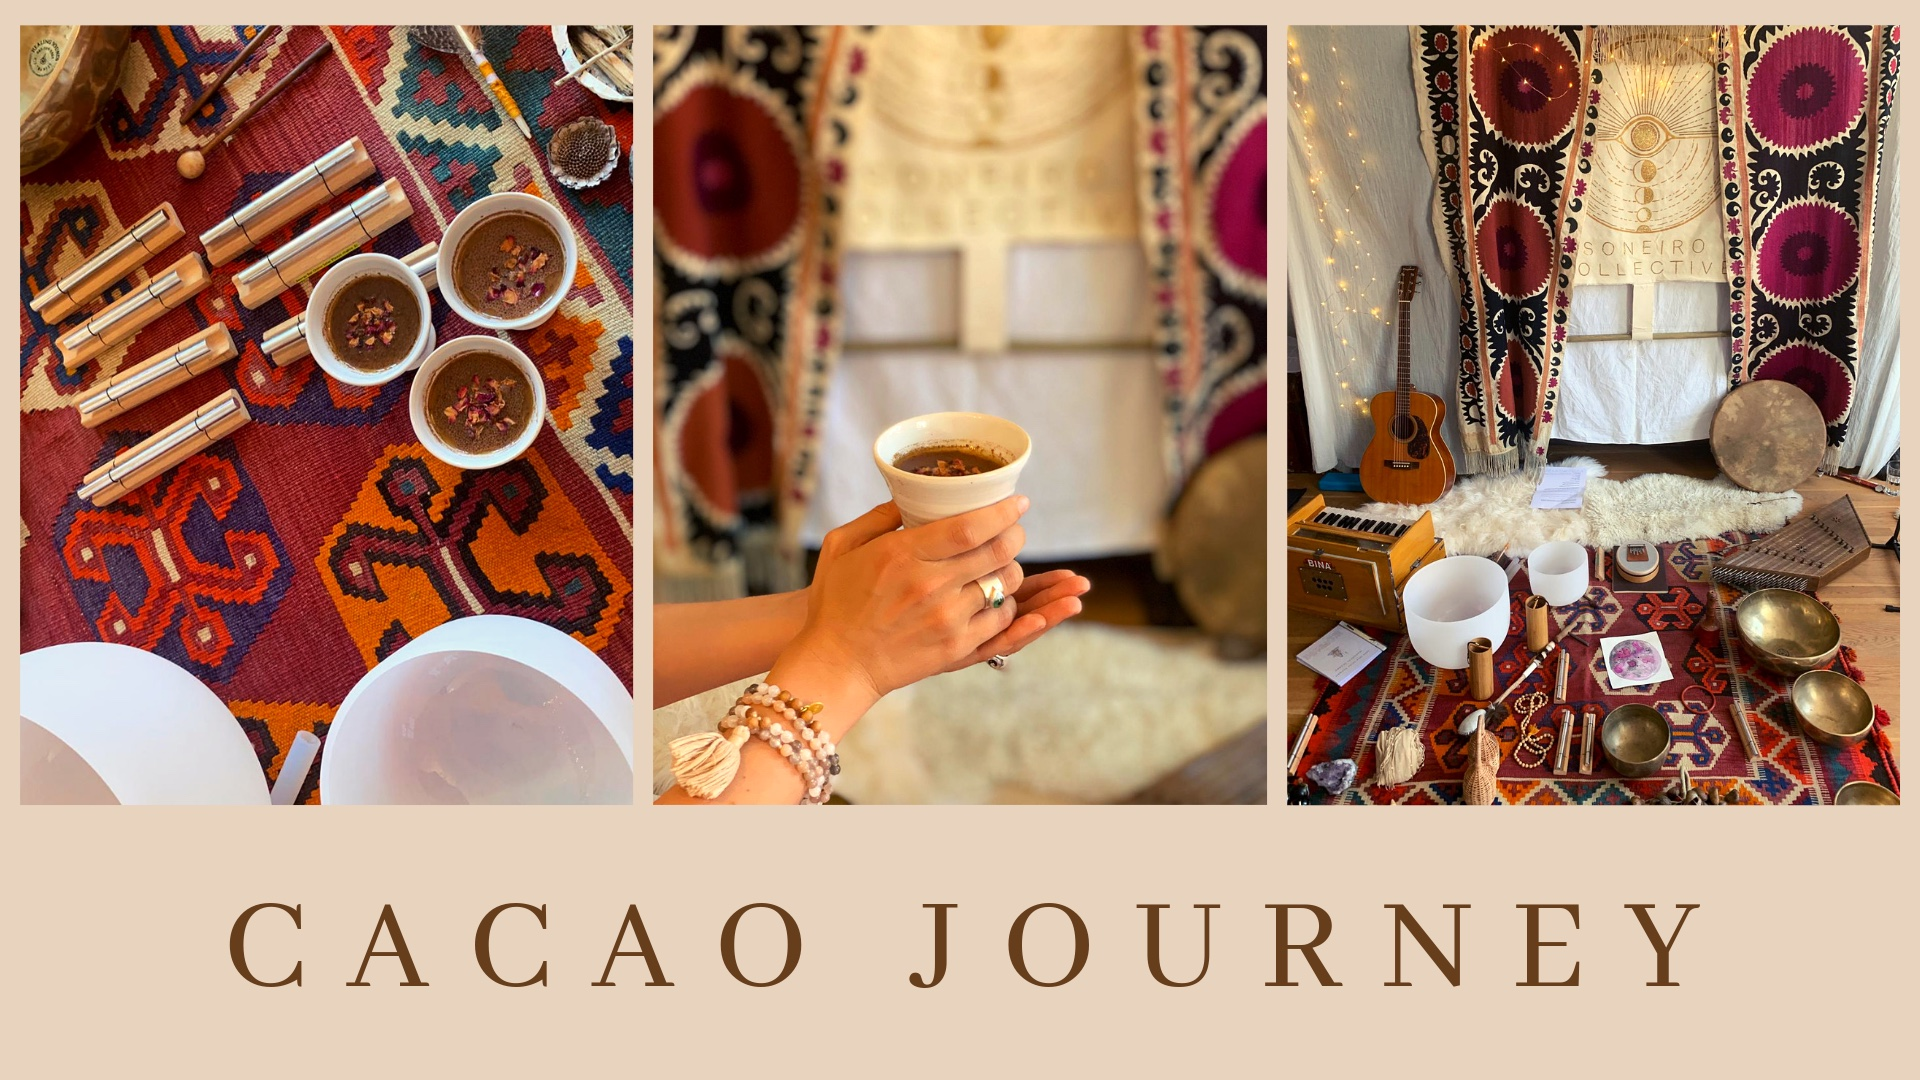 Cacao Journey flyer 1.jpg